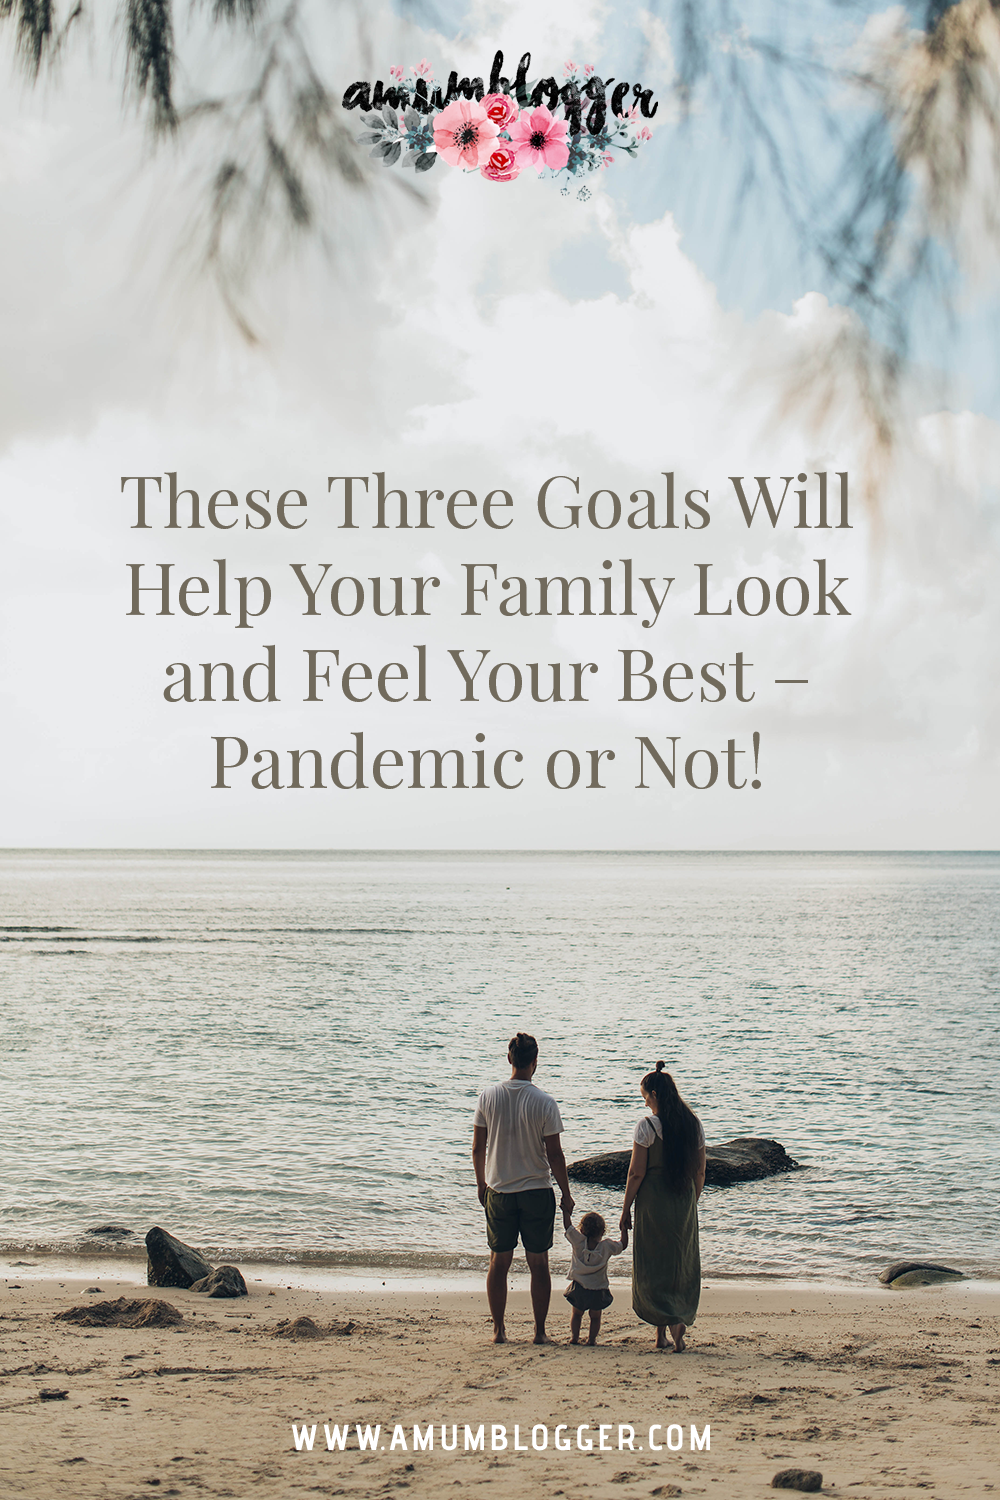 These Three Goals Will Help Your Family Look and Feel Your Best – Pandemic or Not!